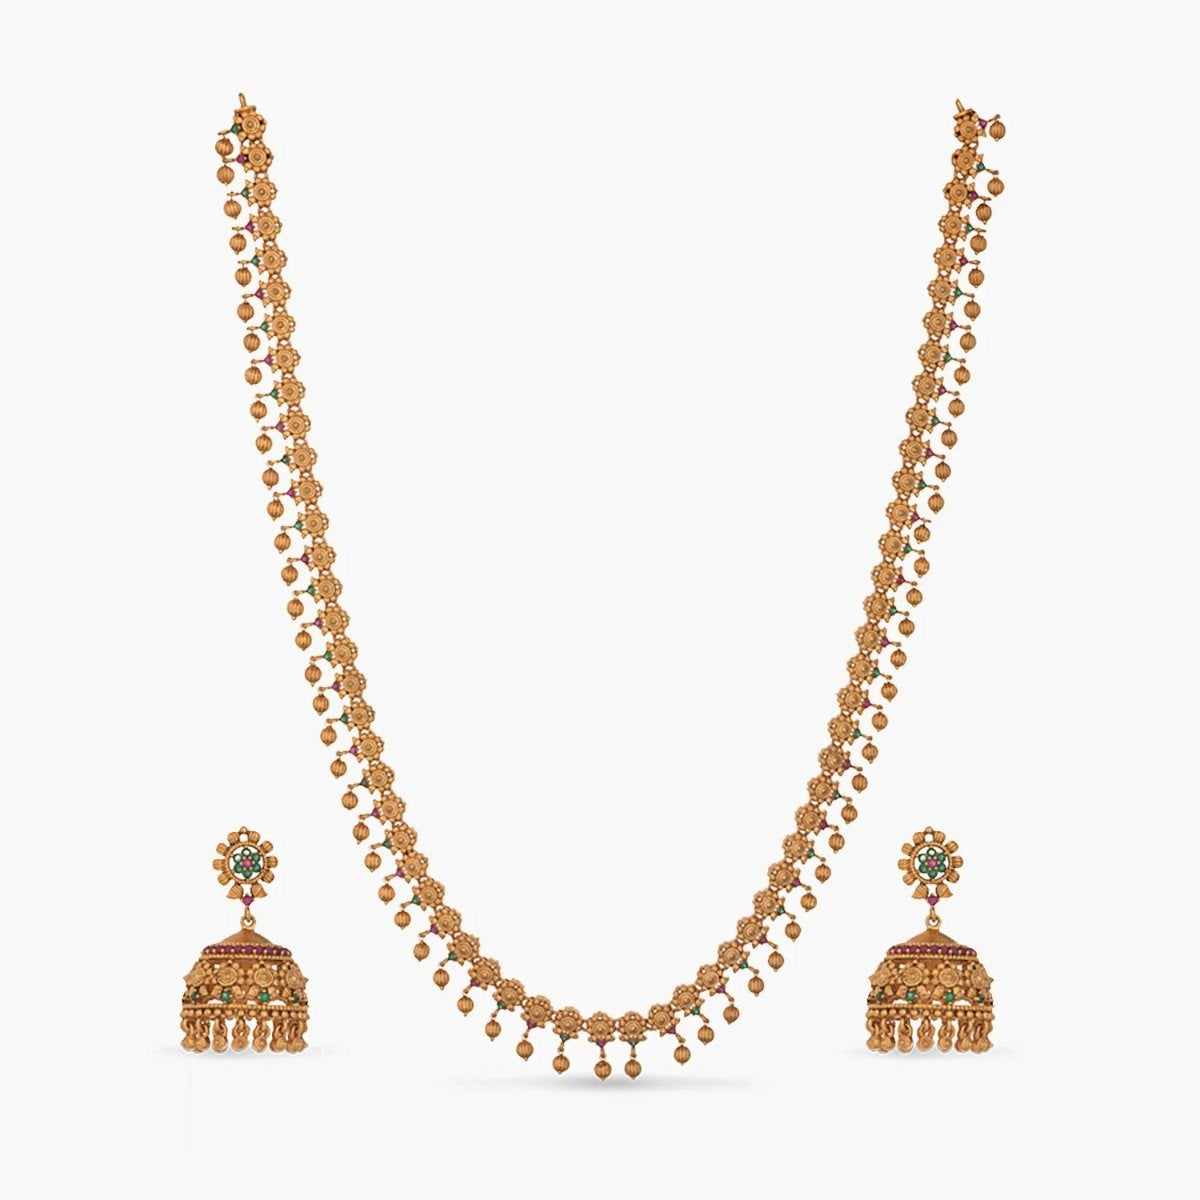 Dara Antique Long Necklace Set